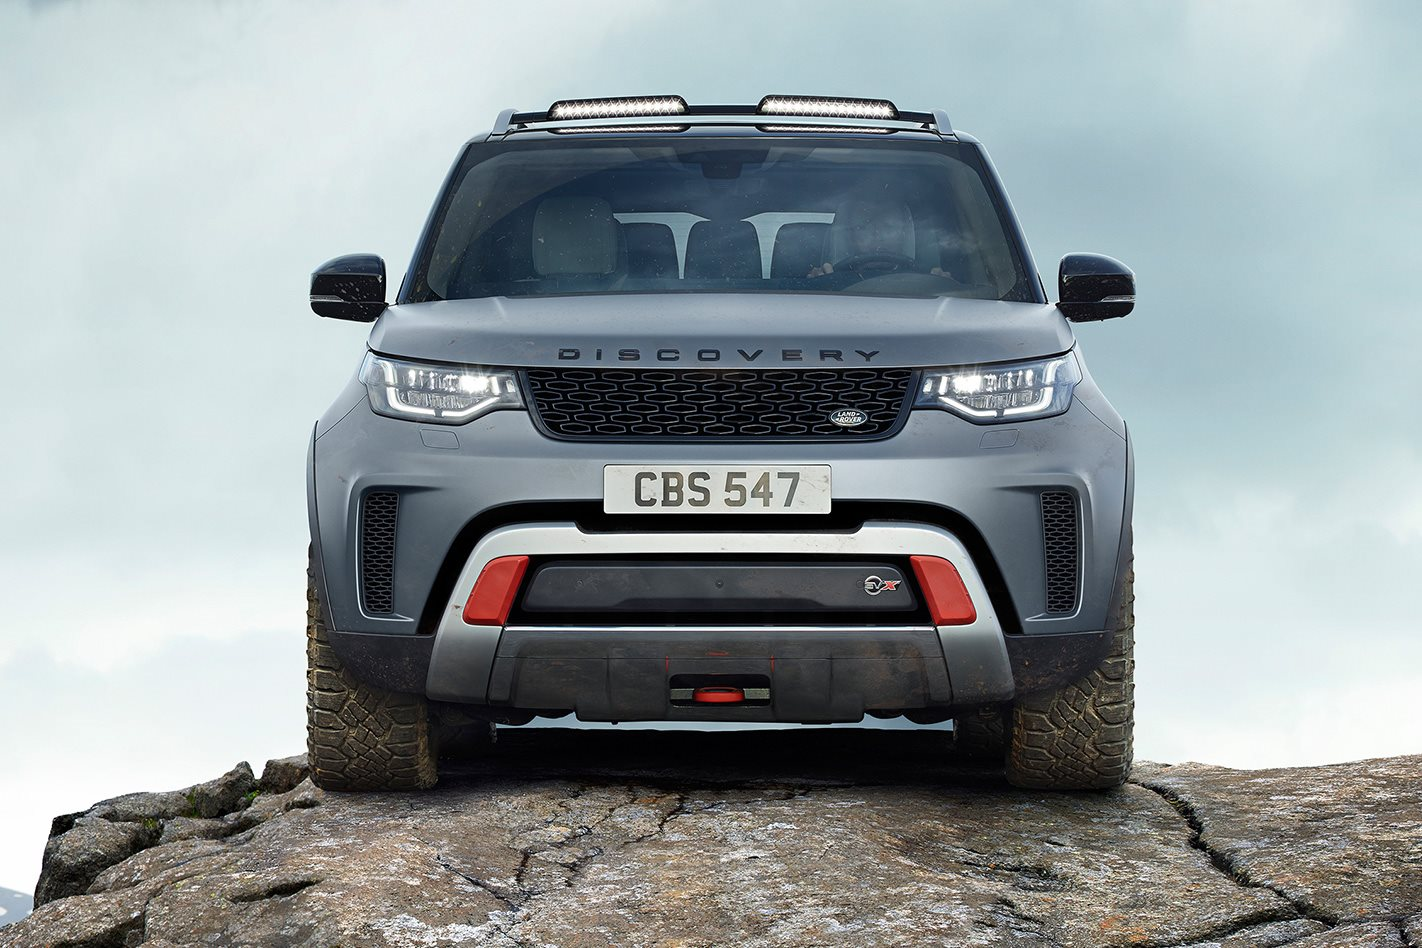 Land-Rover-Discovery-SVX-front.jpg